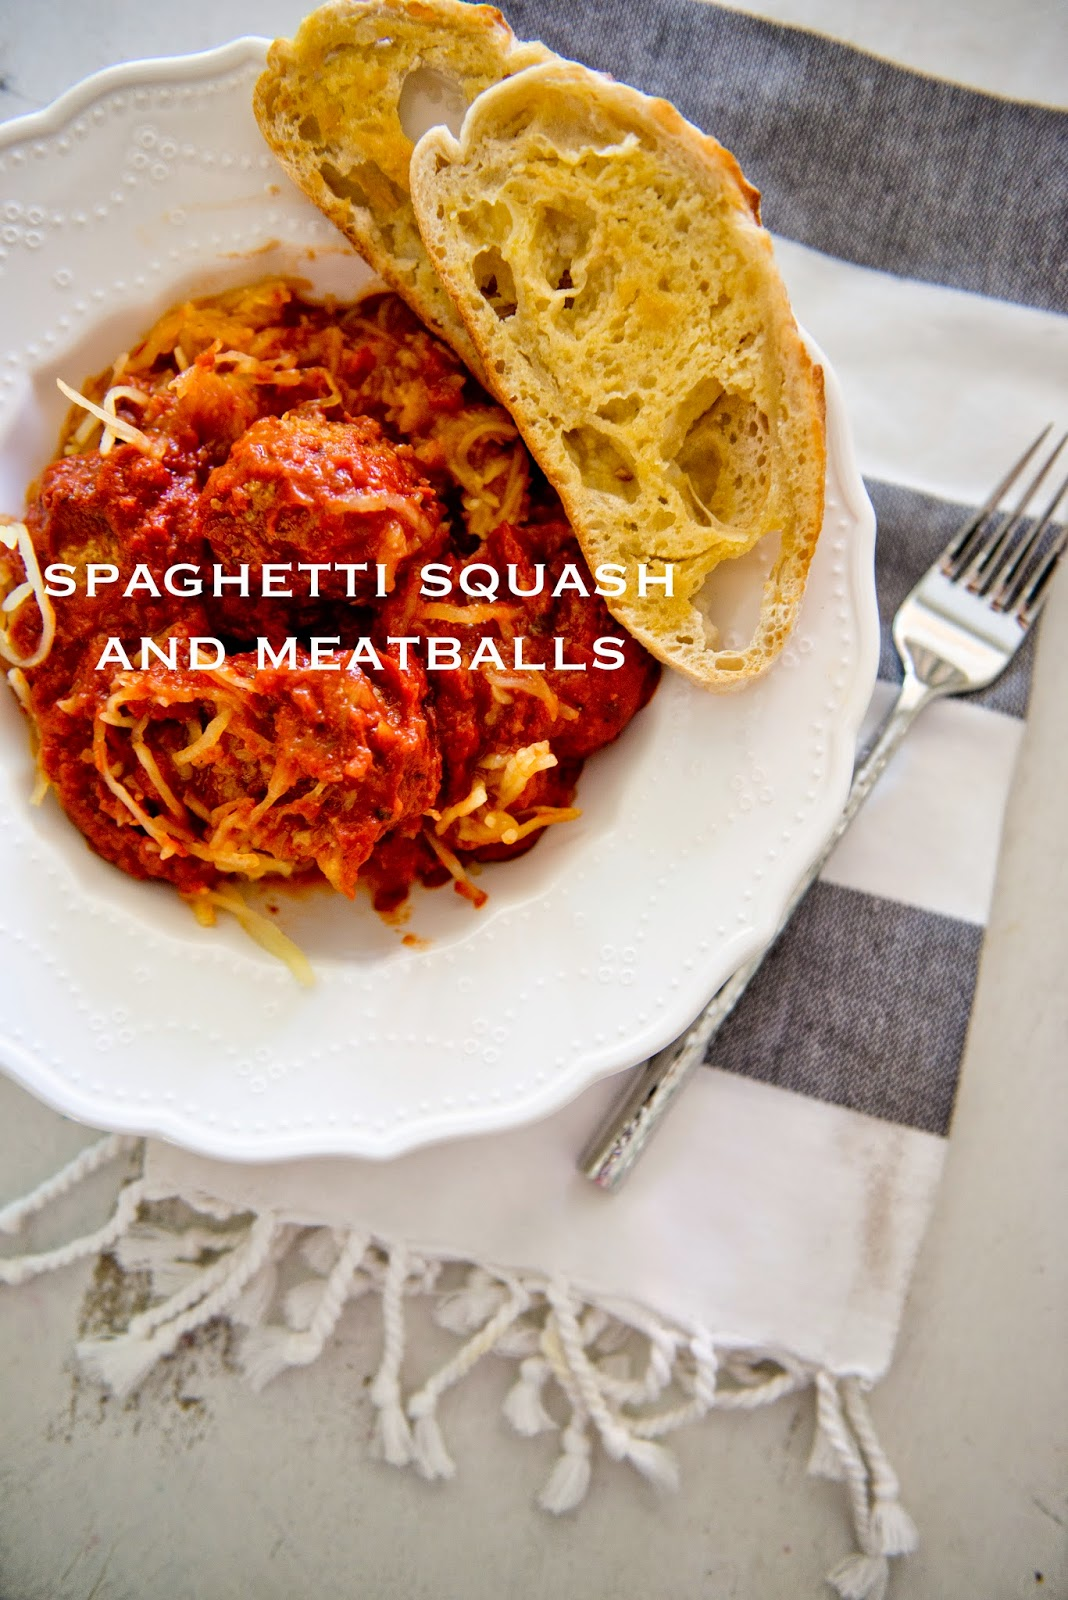 Spaghetti Squash Spaghetti and Meatballs Recipe--using spaghetti squash instead of spaghetti for a healthy spin on this popular comfort food.